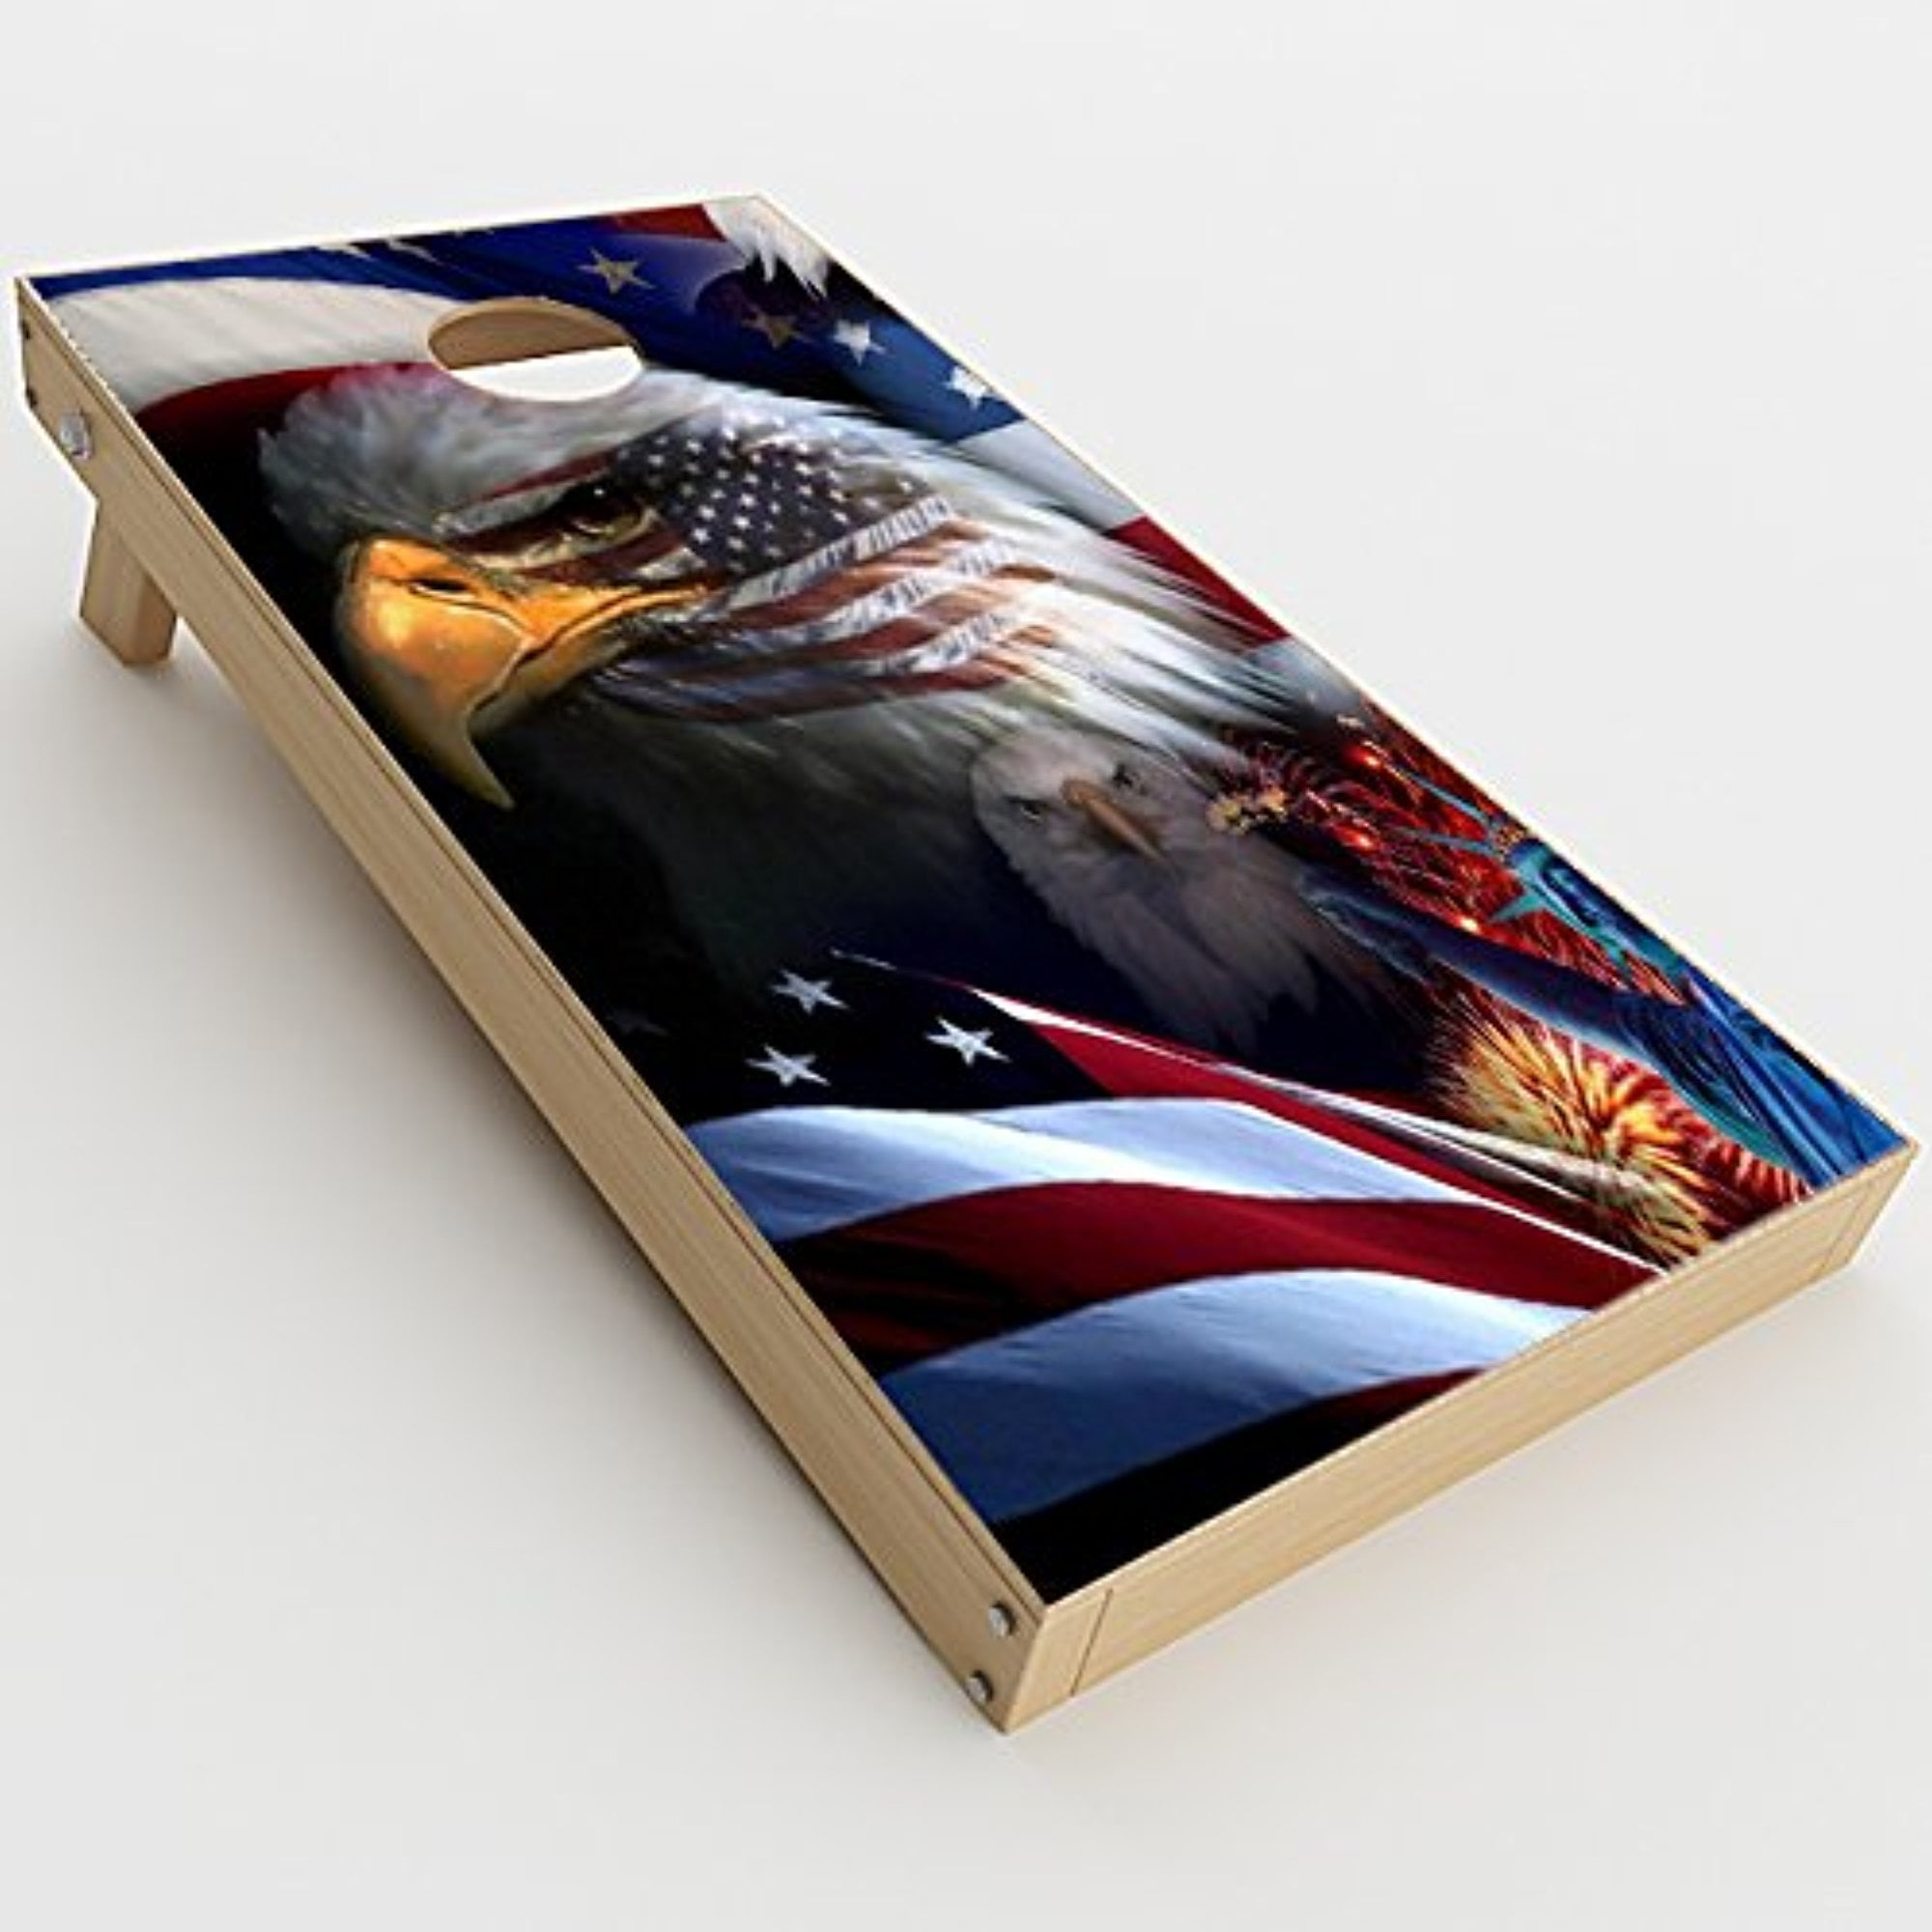 Skin Decals Vinyl Wrap for Cornhole Game Board Bag Toss (2xpcs.)   USA Bald Eagle in Flag by